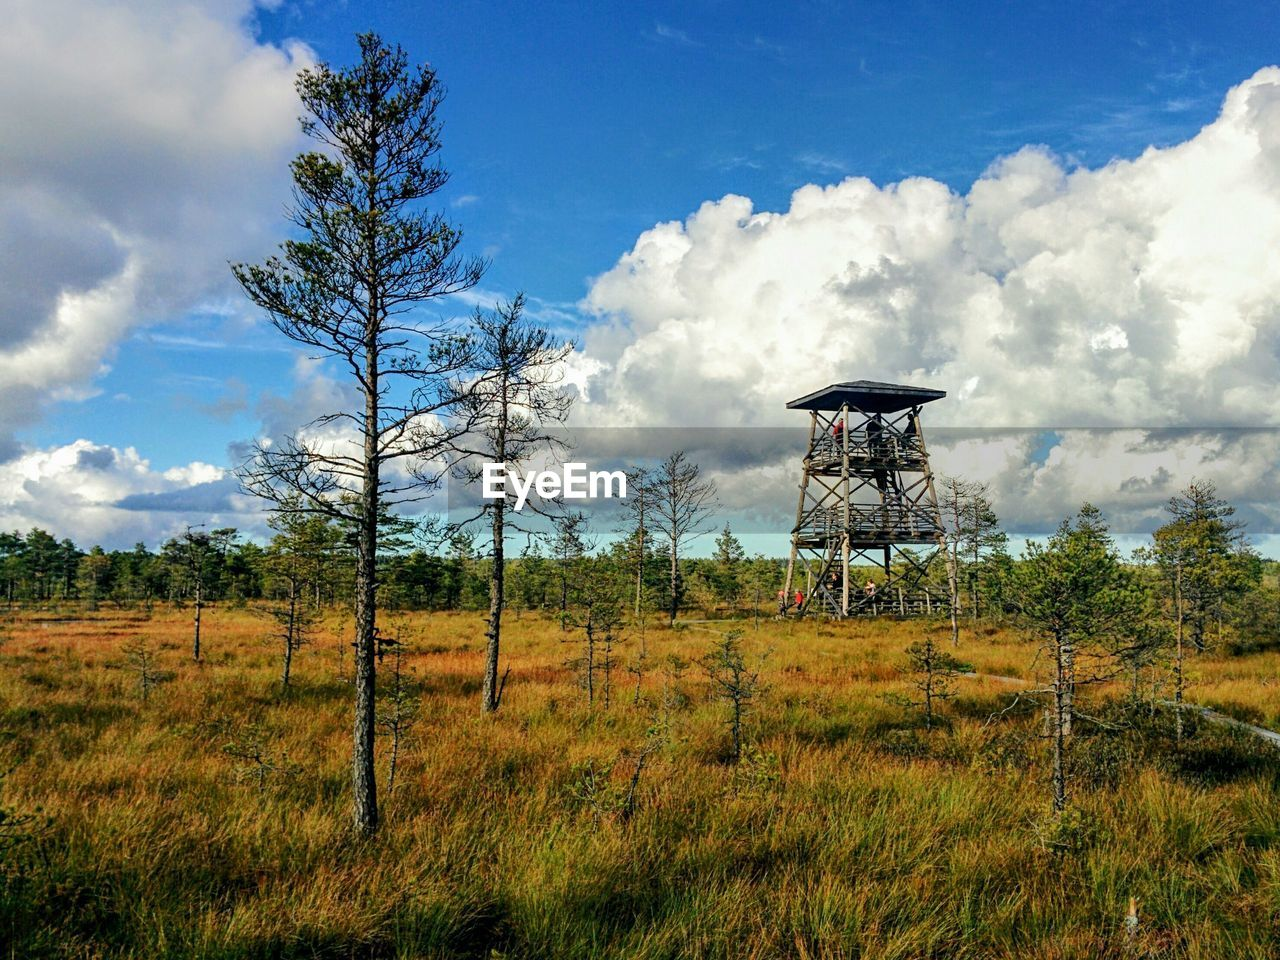 cloud - sky, tree, sky, nature, field, day, outdoors, grass, water tower - storage tank, no people, beauty in nature, growth, architecture